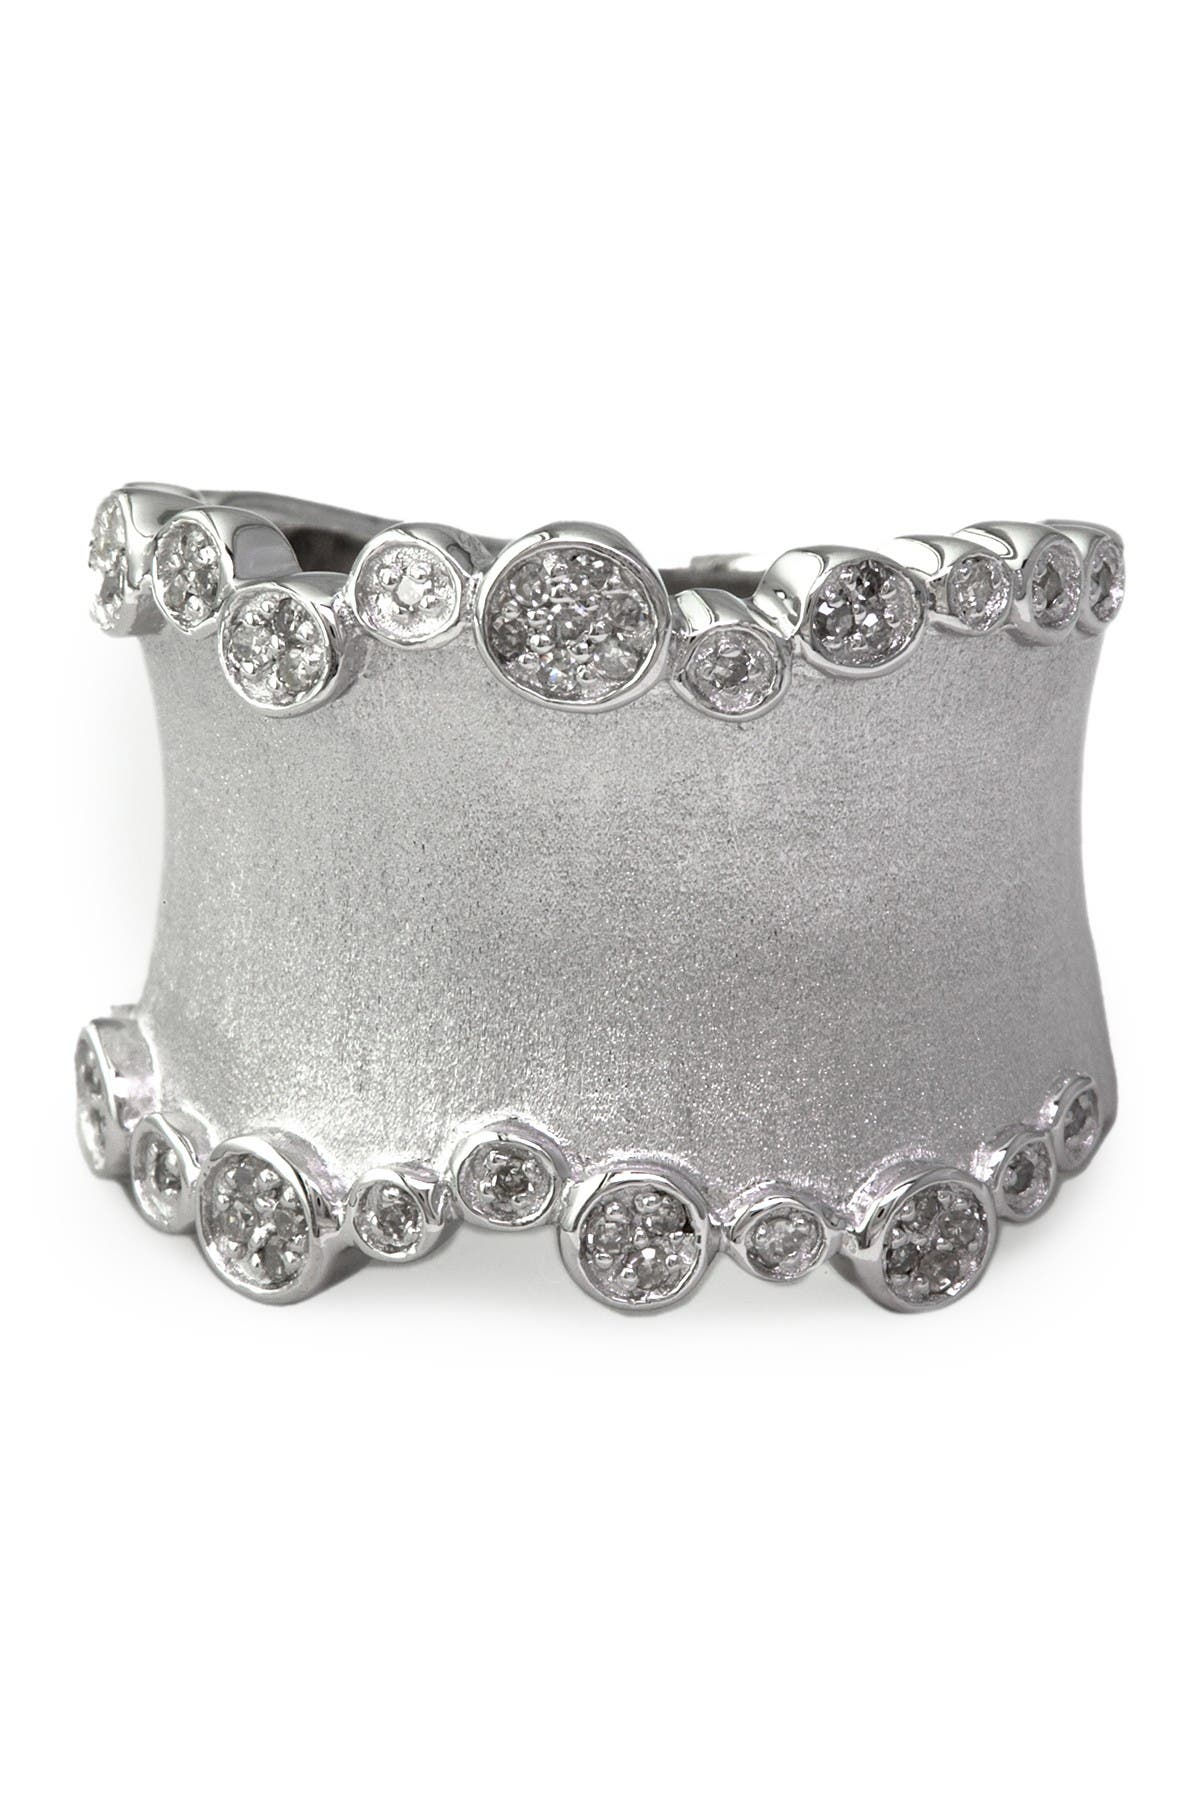 Image of Effy Sterling Silver Pave Diamond Band Ring - Size 7 - 0.20 ctw